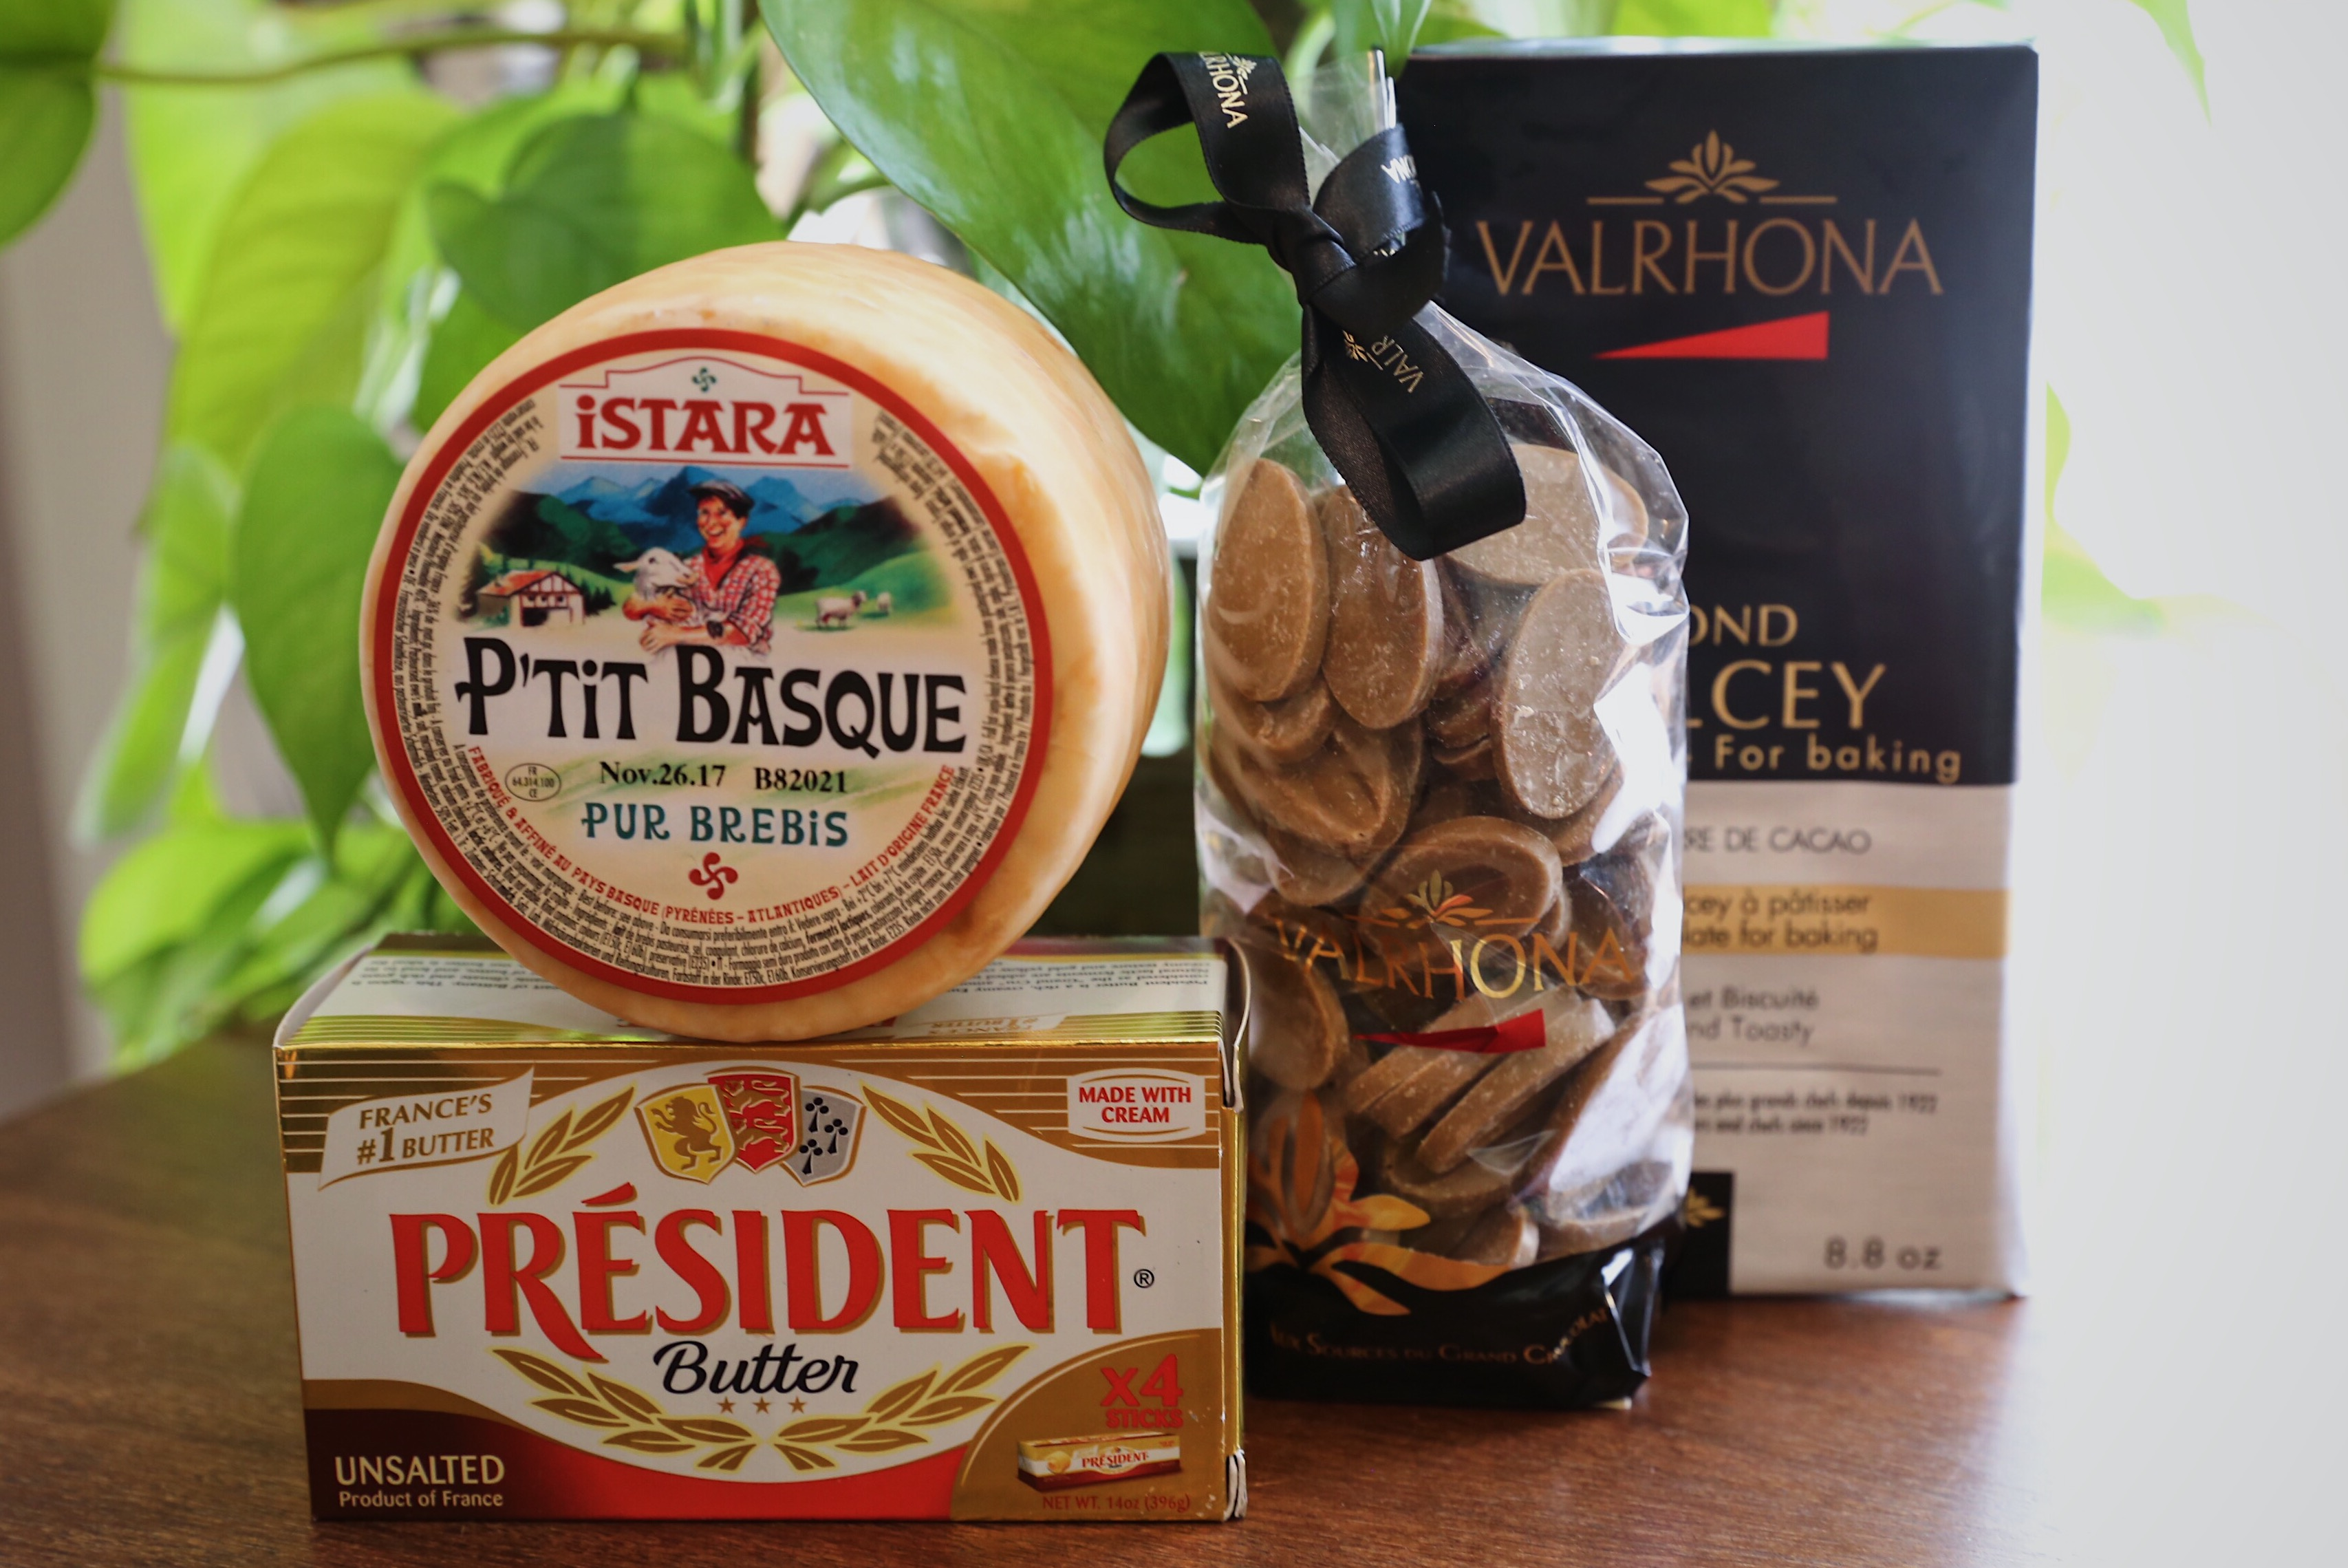 VALRHONA Dulcey 32% baking bar Orelys 35% 500g baking bag President Butter ISTARA P'TIT BASQUE